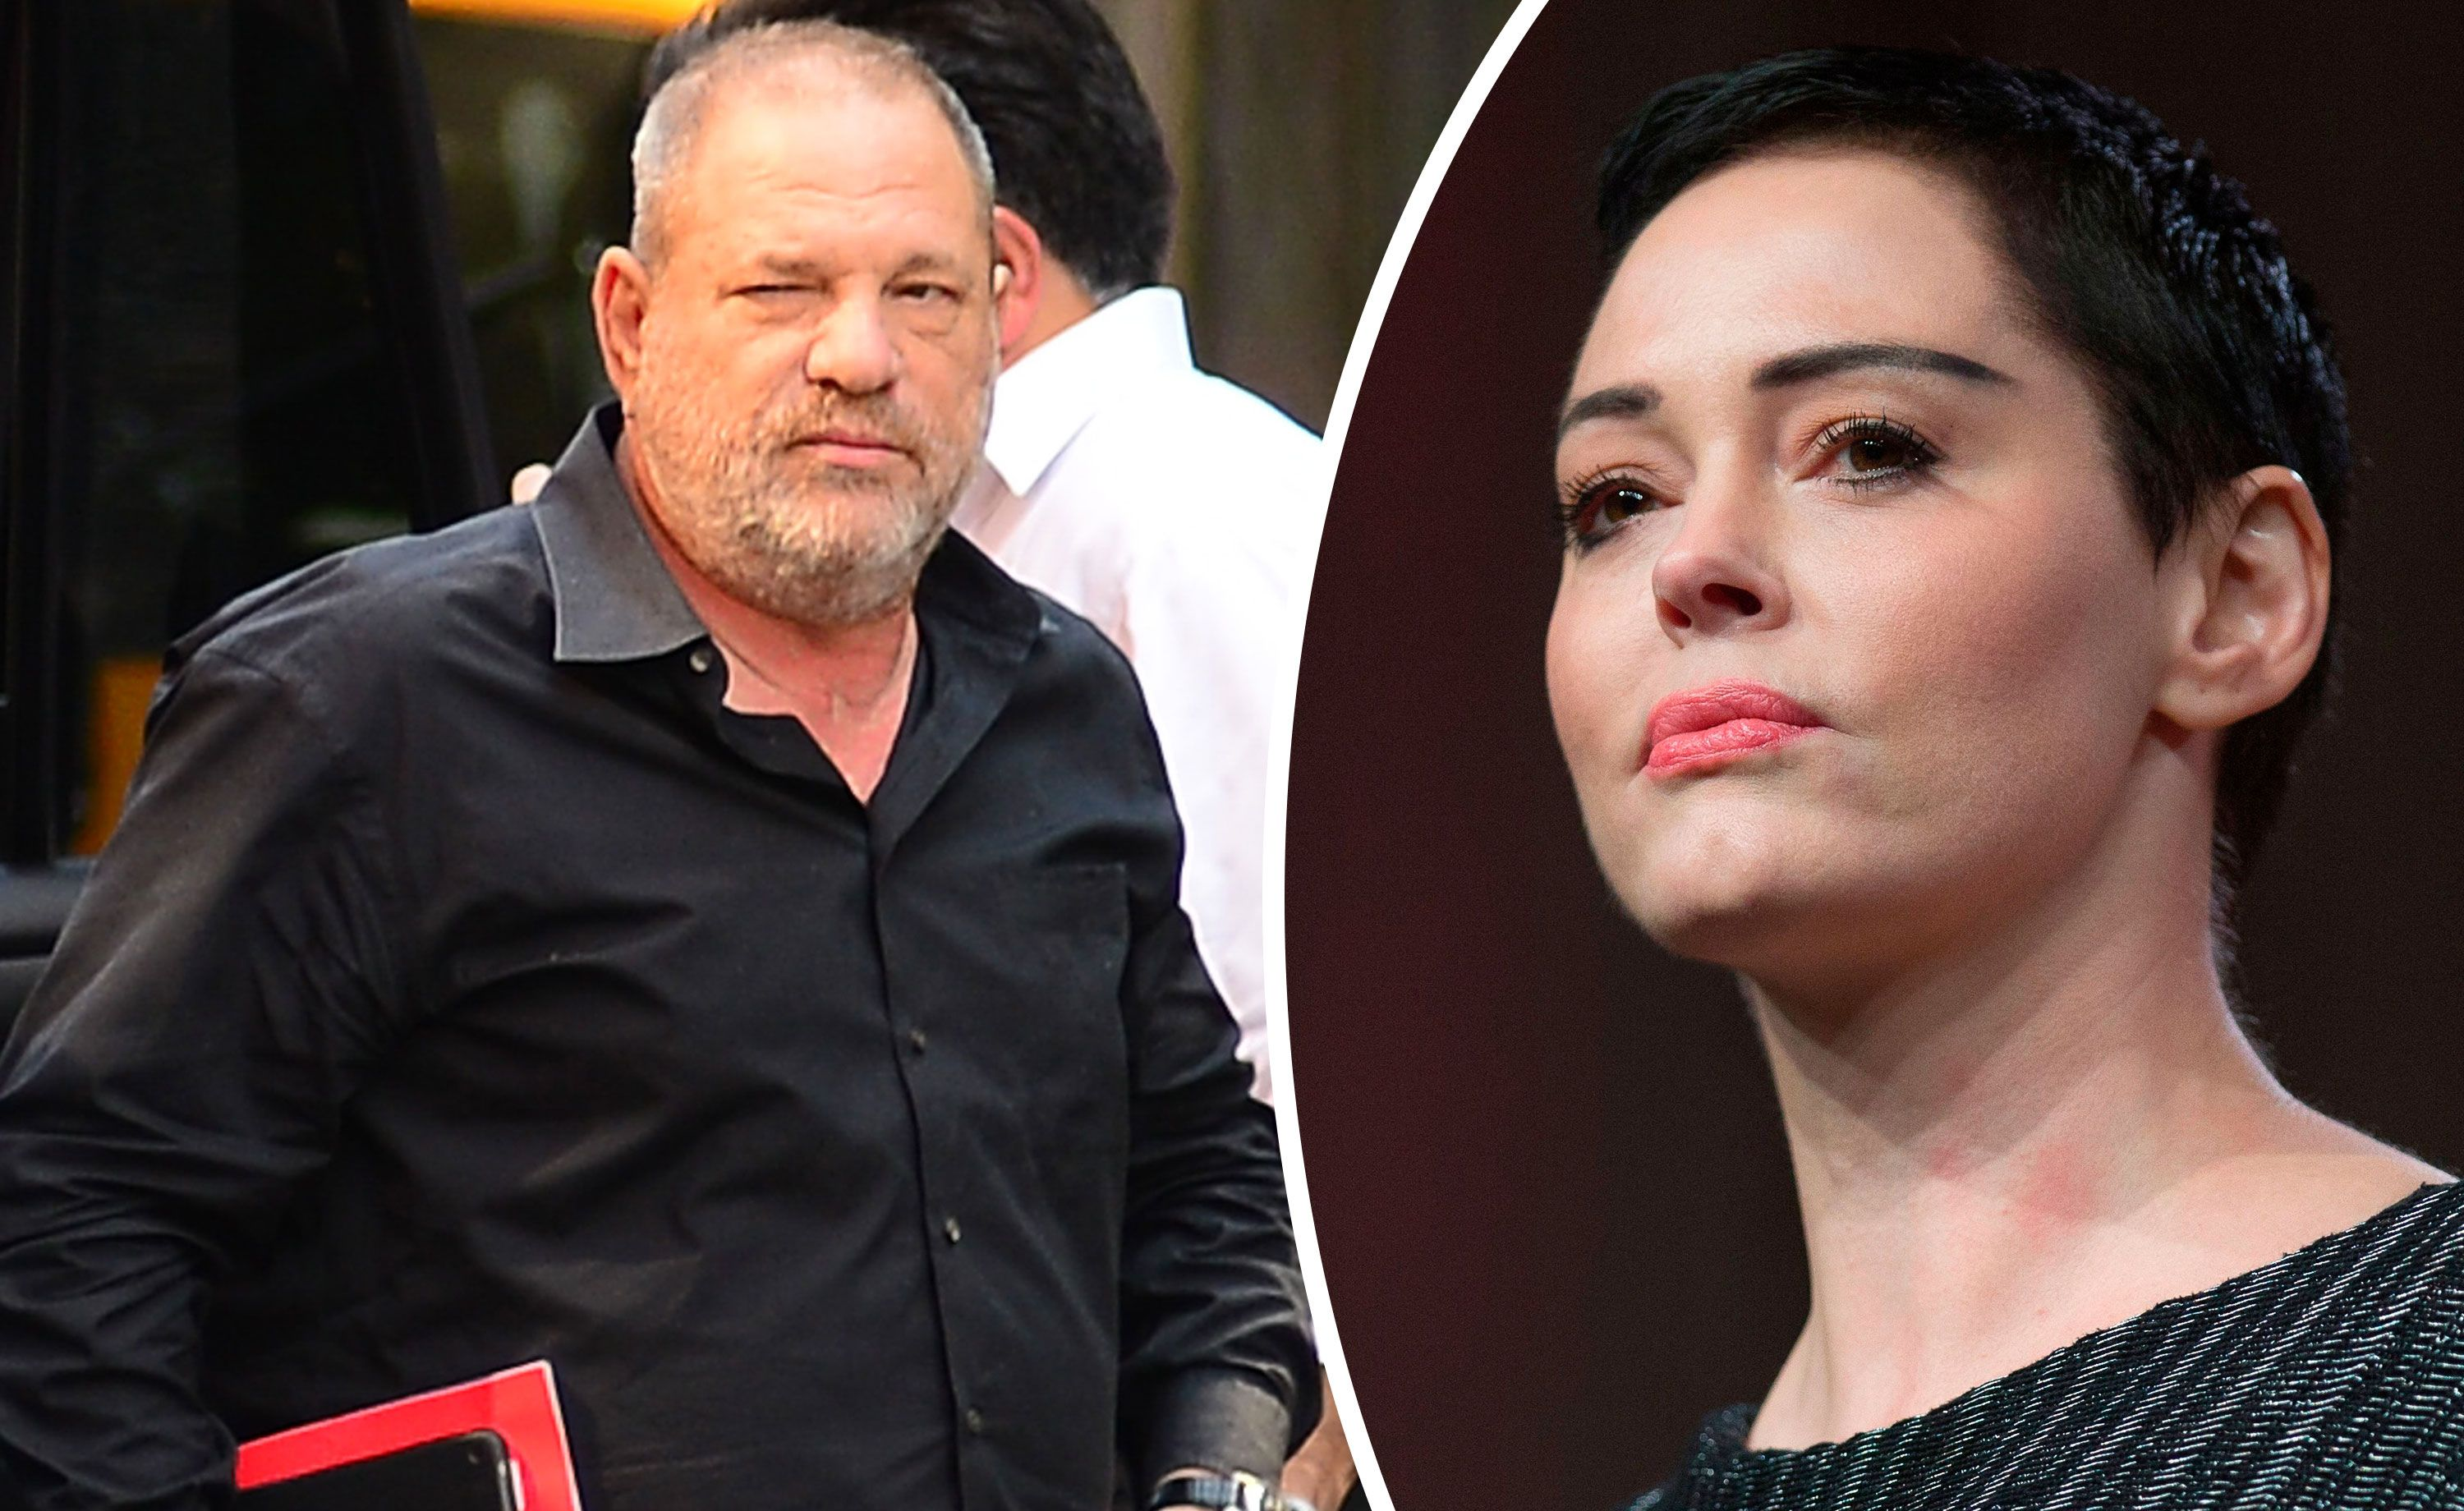 Rose Mcgowan Accuses Harvey Weinstein Of Trying To Slut Shame Her